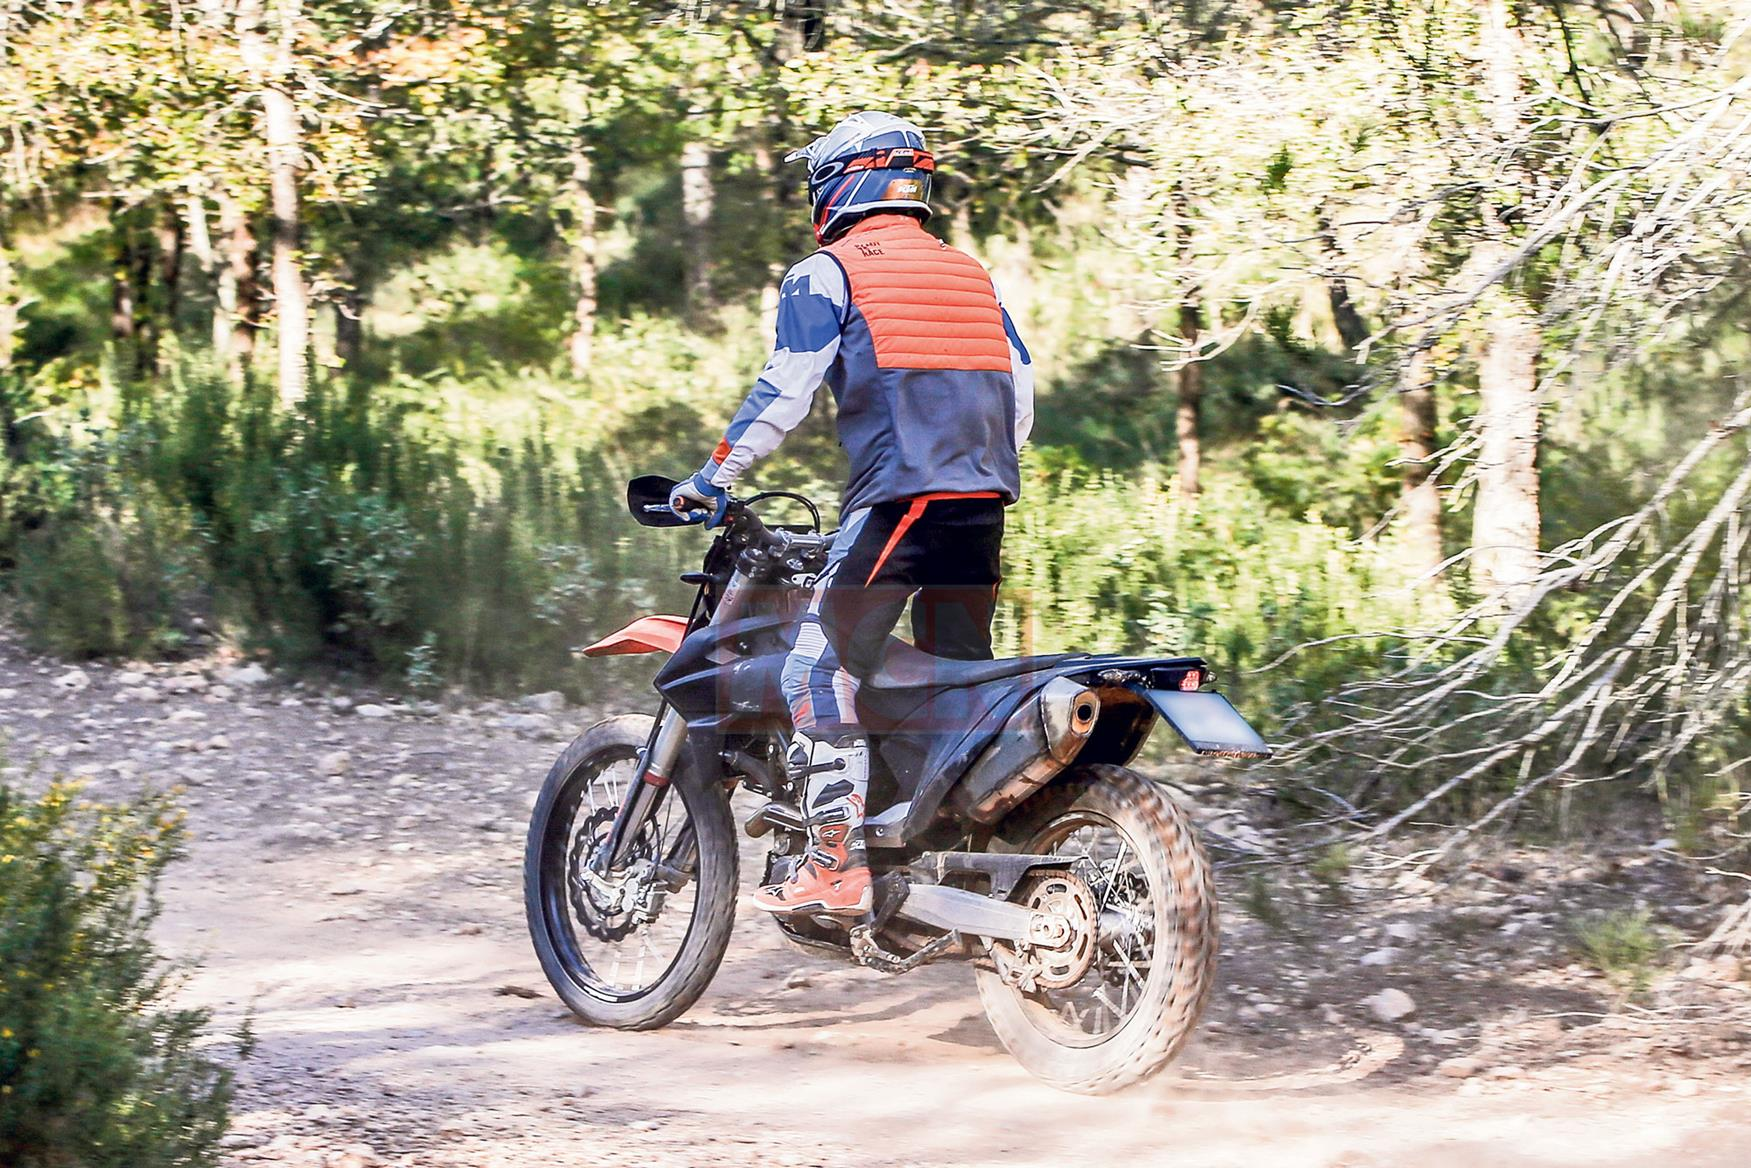 Ktm Enduro Price In India